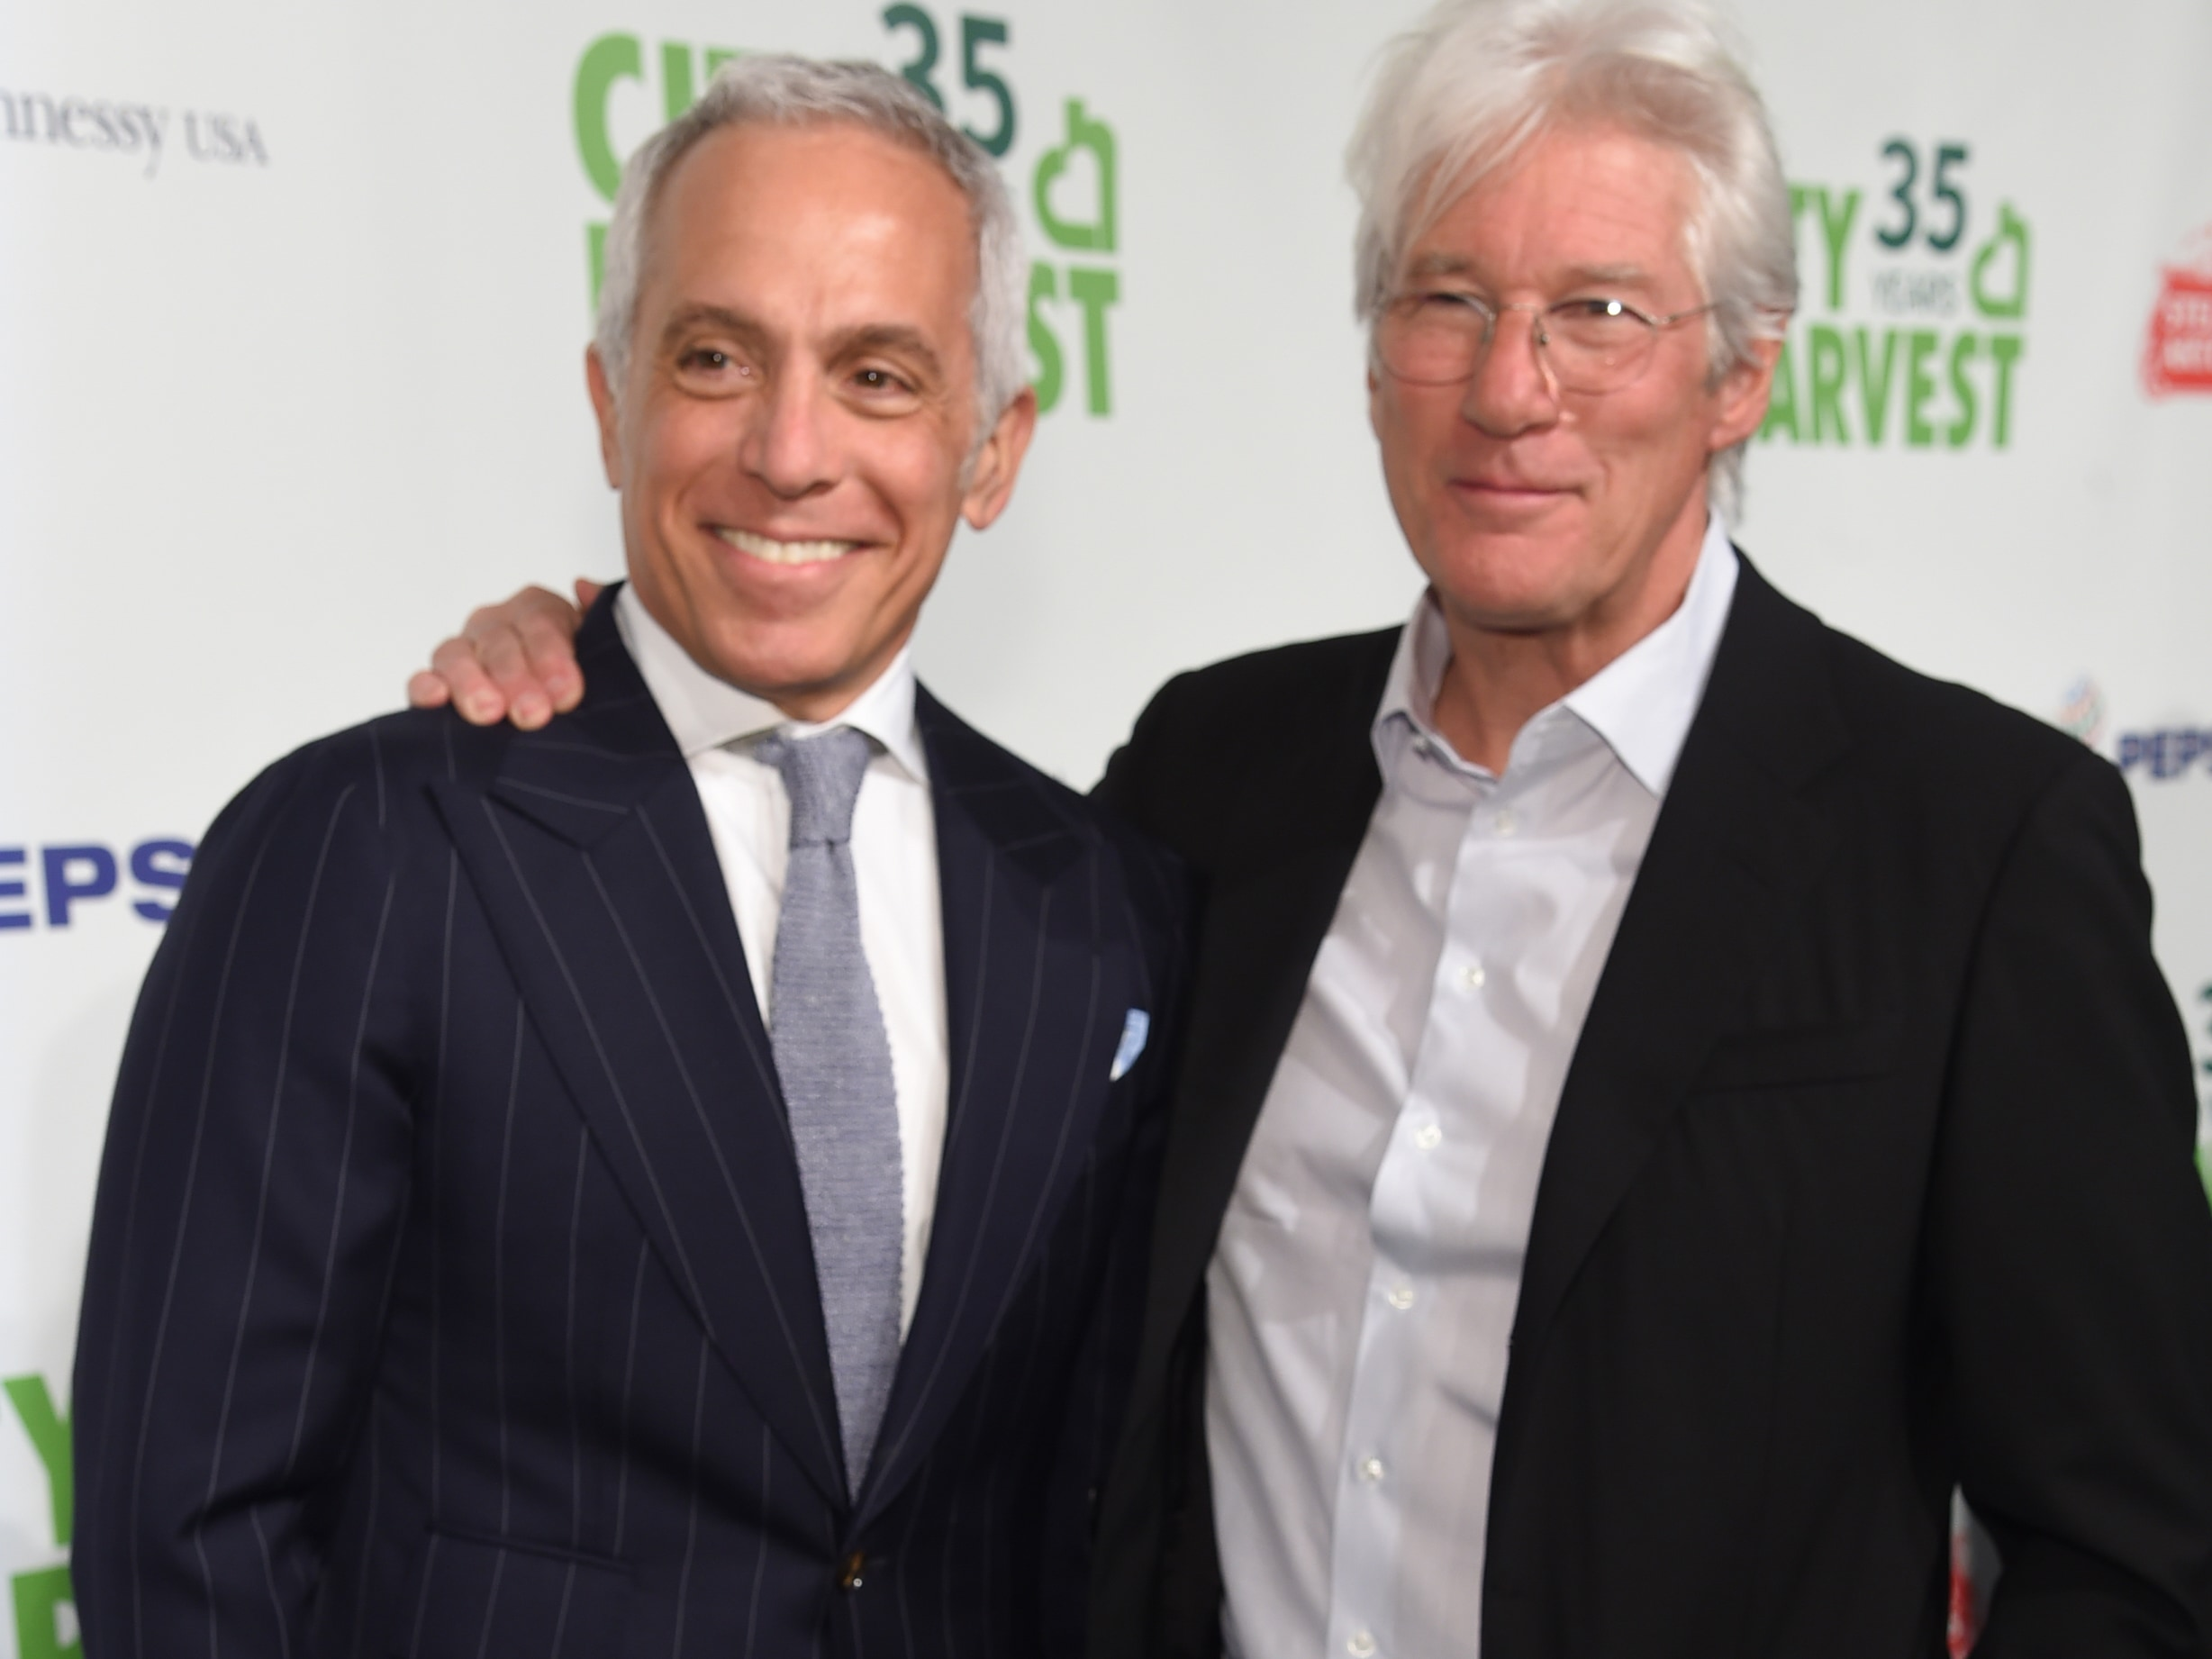 geoffrey-zakarian-and-richard-gere.jpg